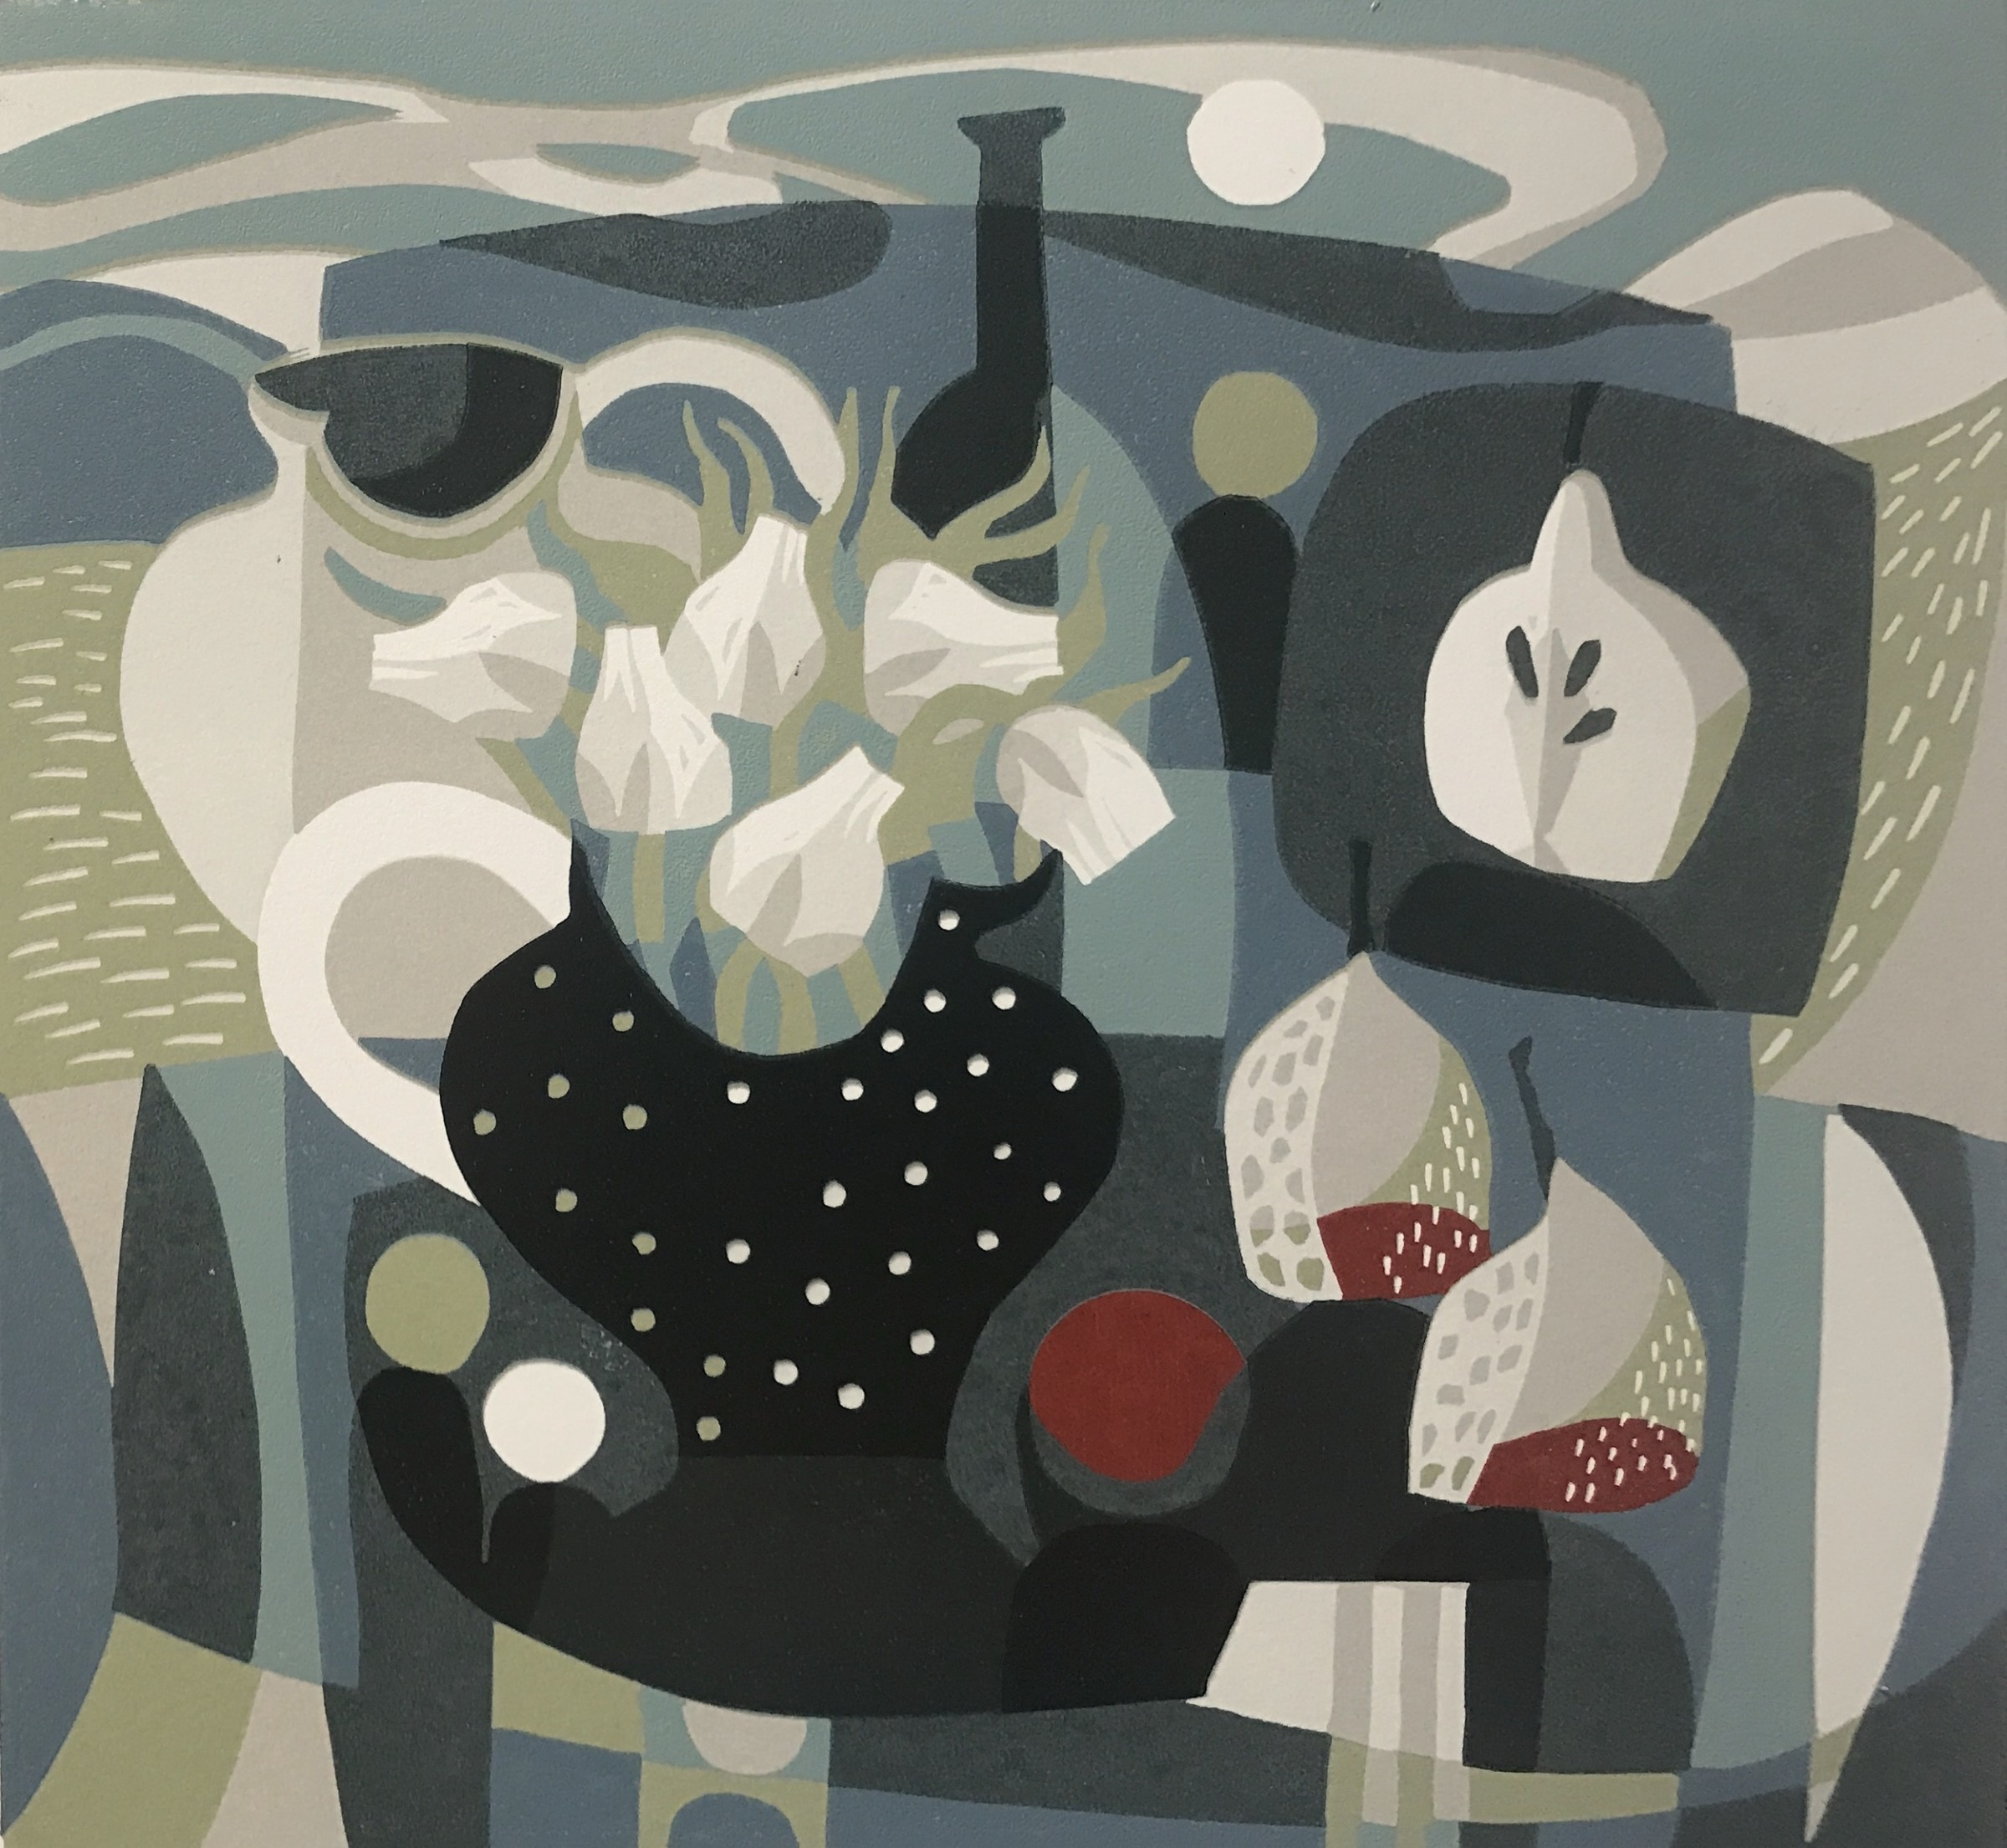 """<span class=""""link fancybox-details-link""""><a href=""""/exhibitions/17/works/image_standalone825/"""">View Detail Page</a></span><p><strong>Jane Walker</strong></p><p>Cloud Shadows</p><p>linocut, ed of 12</p><p>55 x 63cm</p><p>£345 framed</p><p>£275 unframed</p>"""